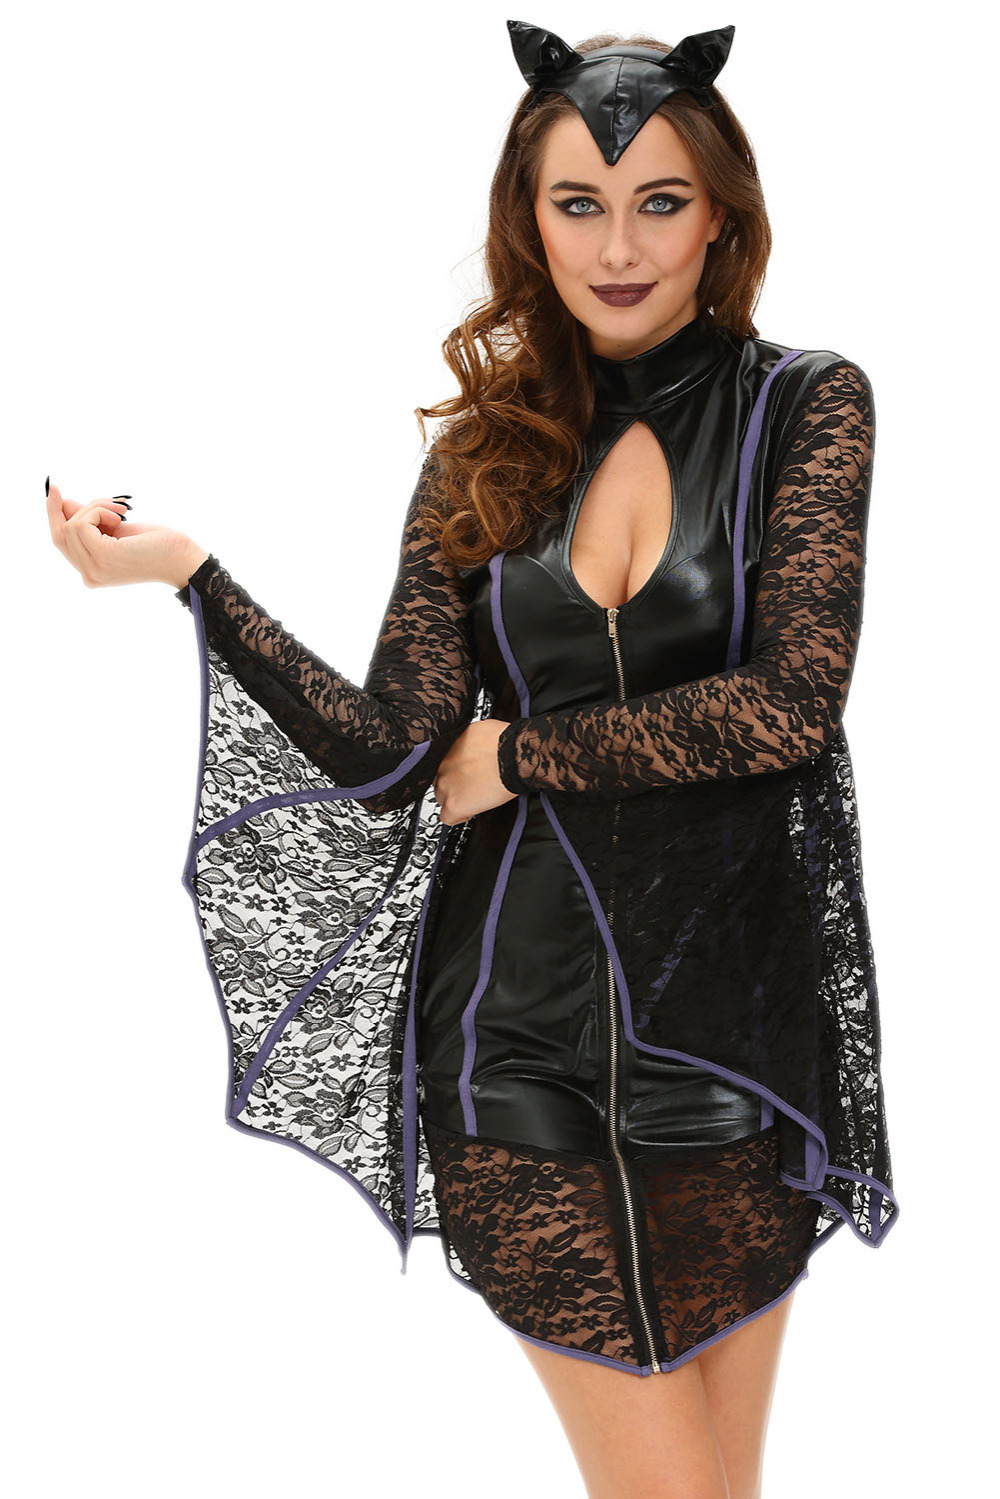 Compare Prices on Devil Costume Adult- Online Shopping/Buy Low ...